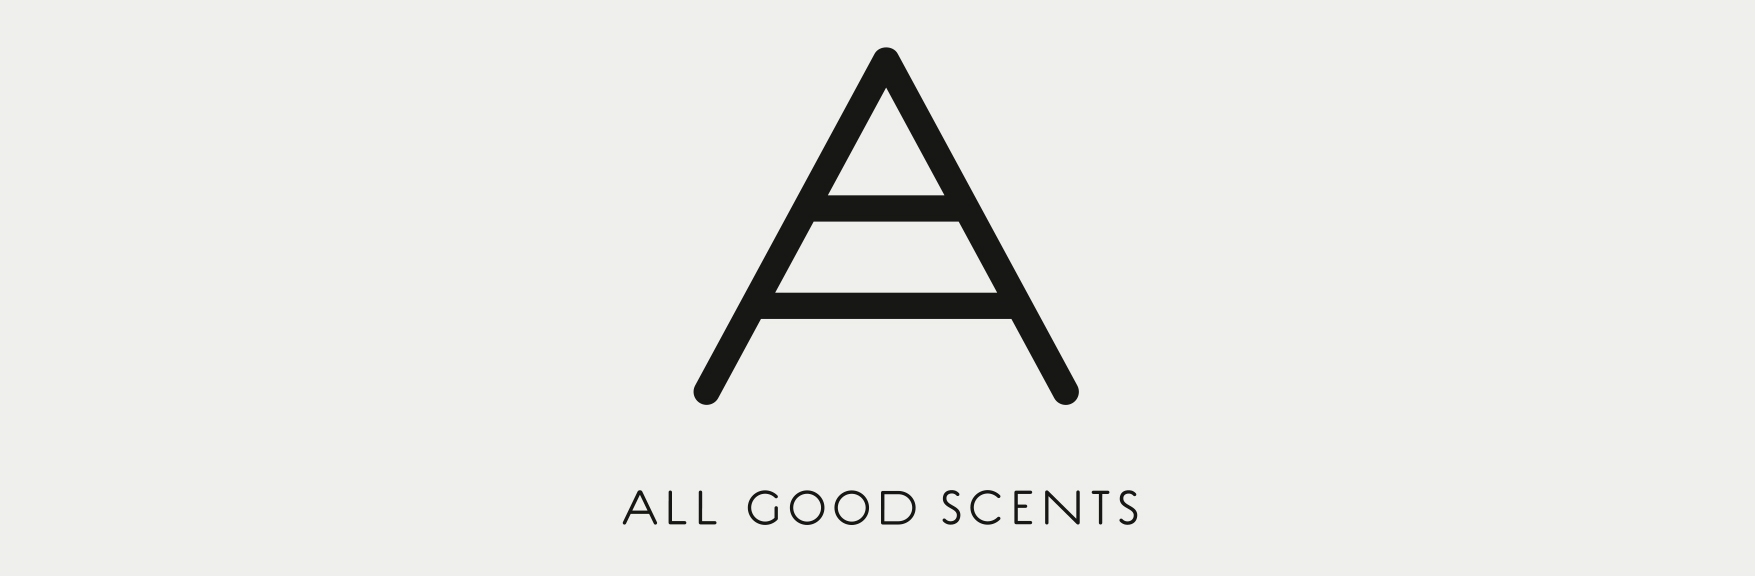 allgoodscents